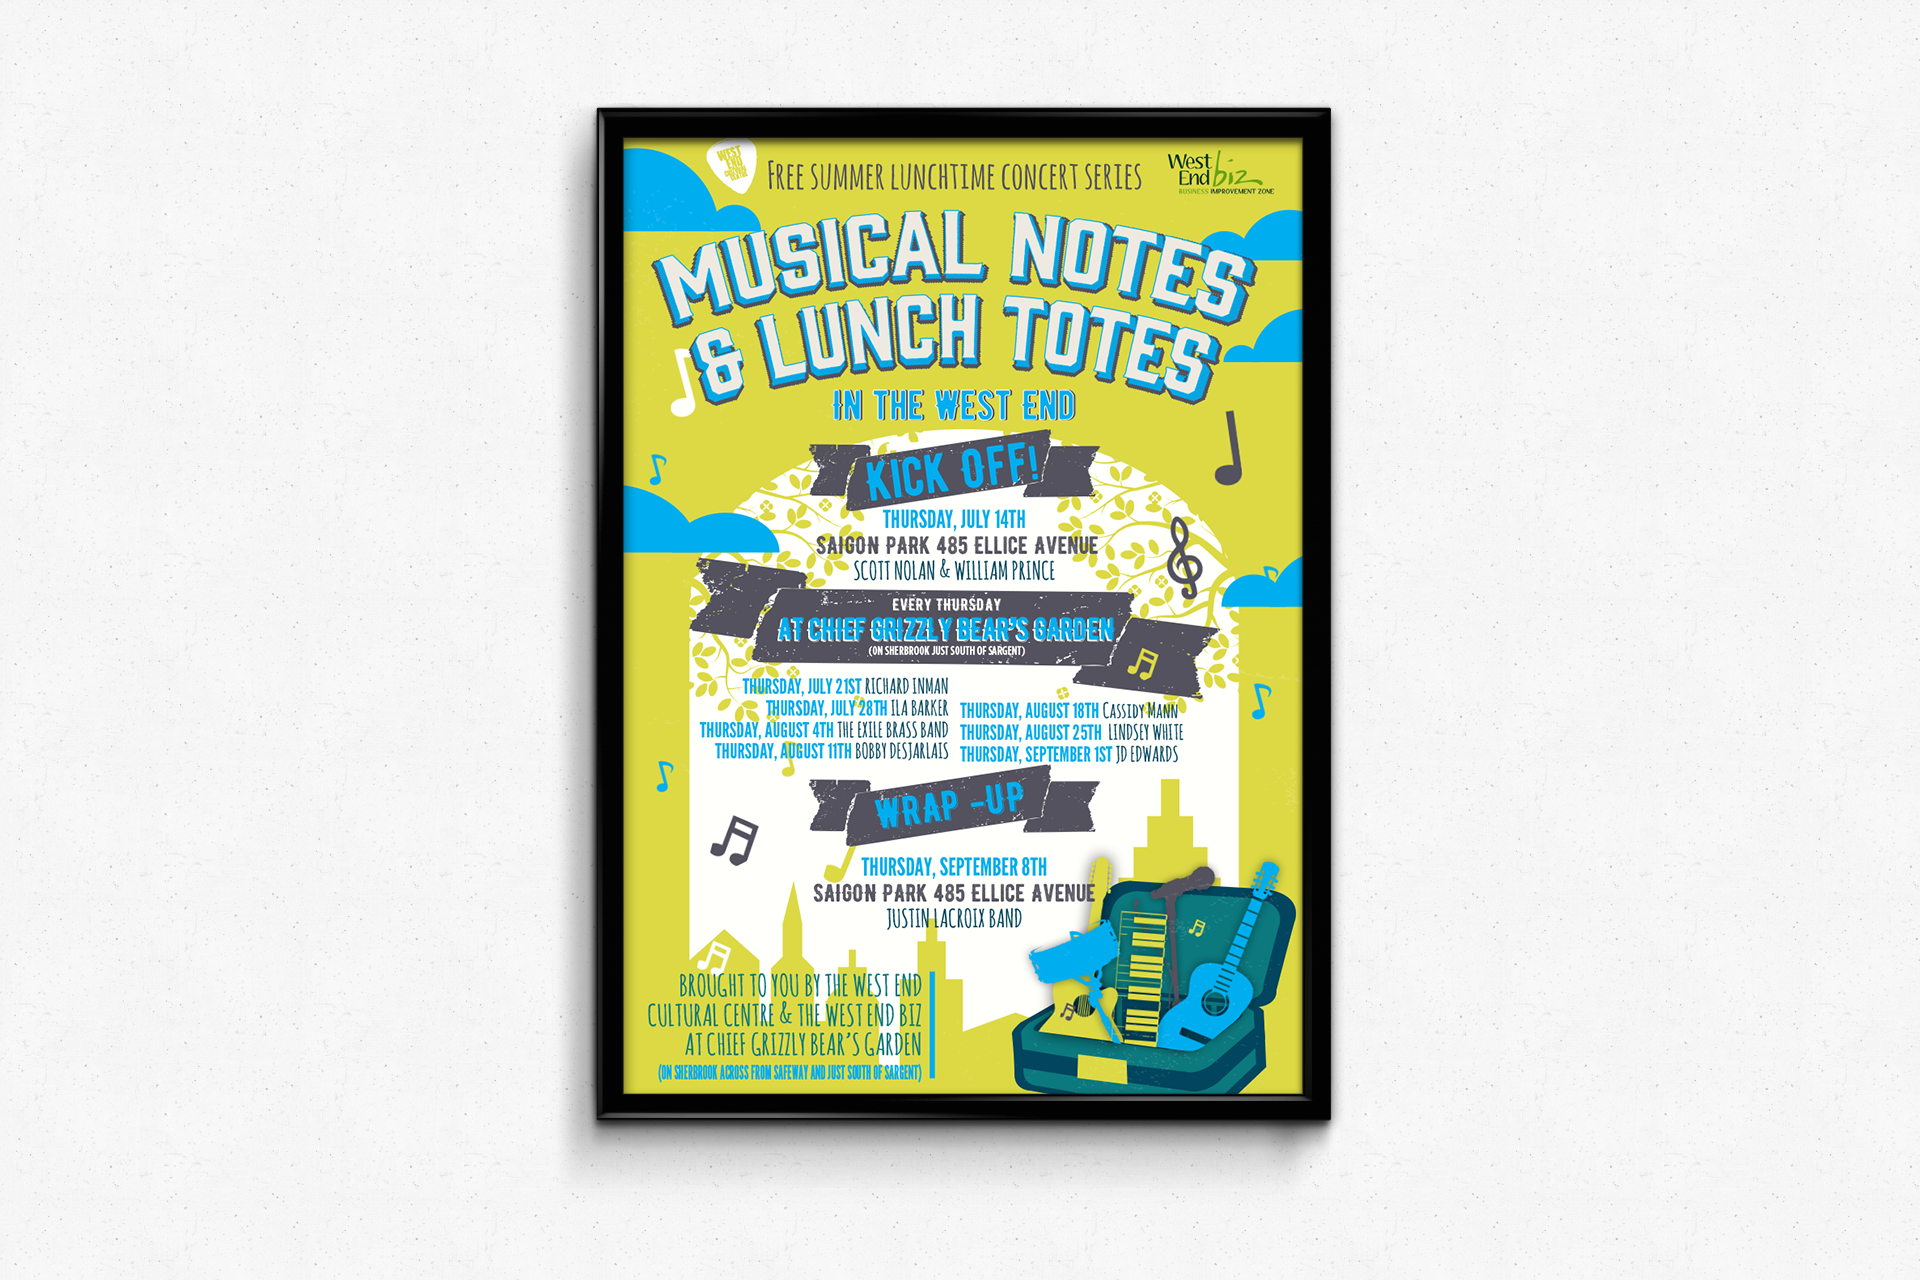 WECC Music Notes and Lunch Totes